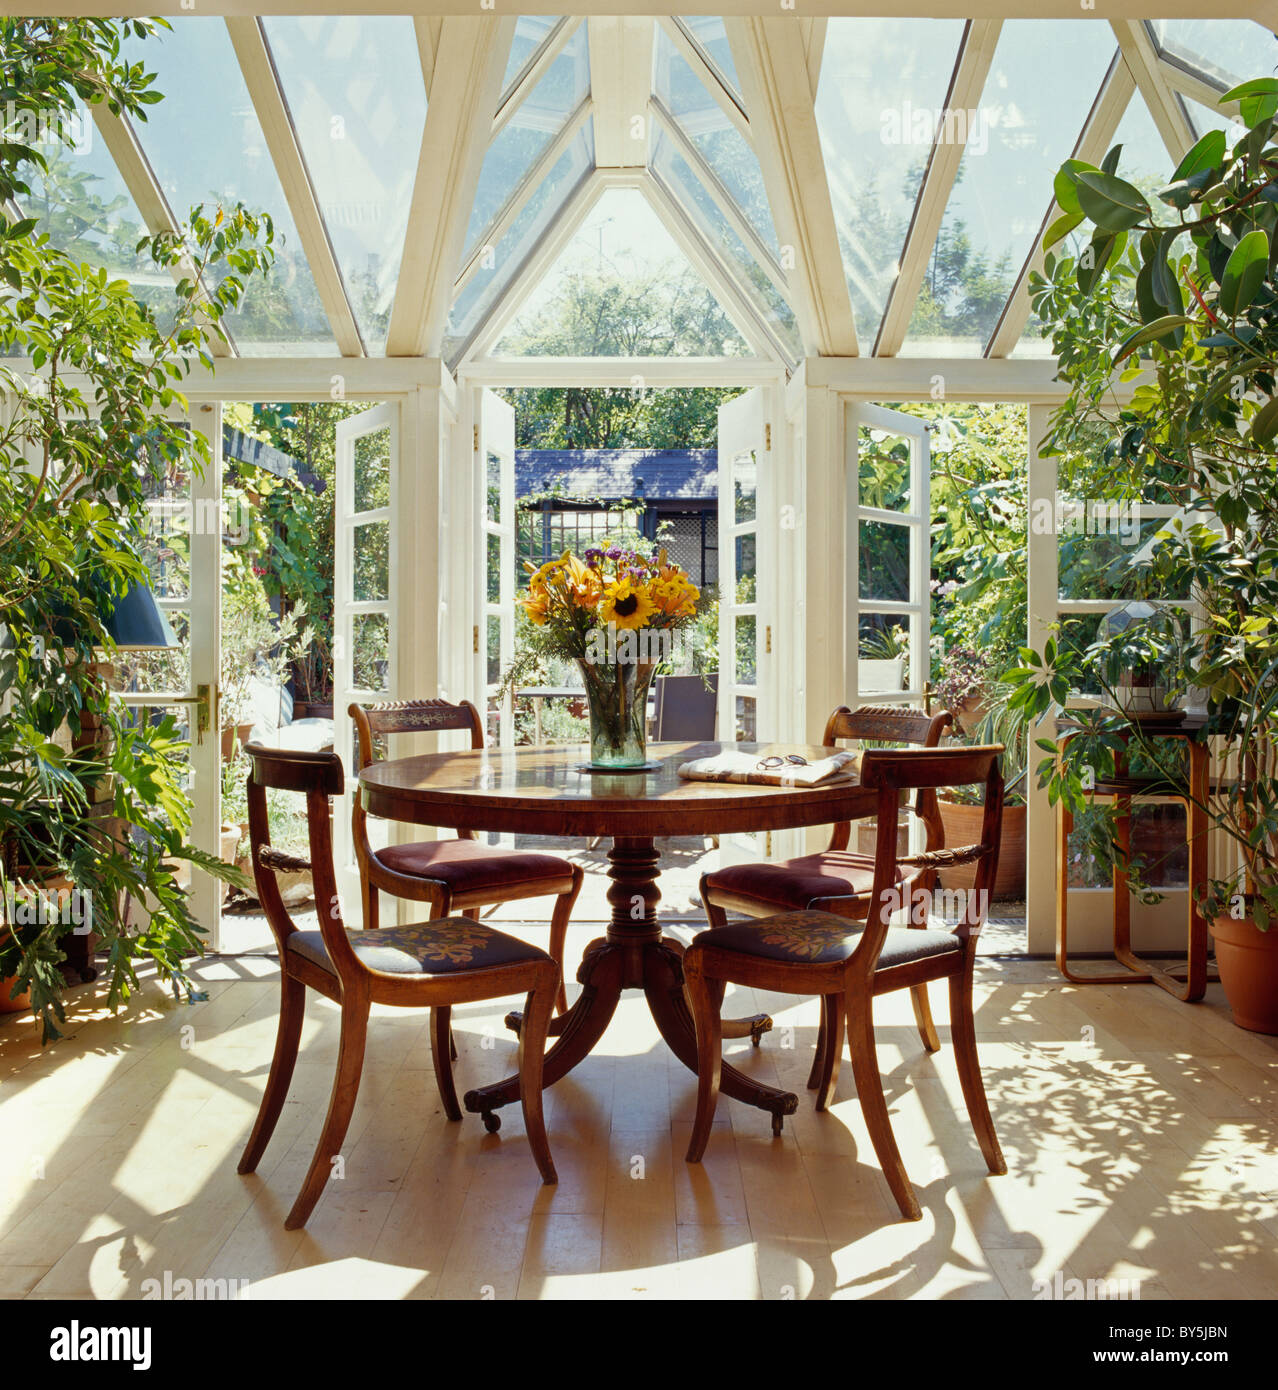 Farm To Table Restaurants With Gardens Gallery: Antique Circular Table And Antique Chairs In Sunny